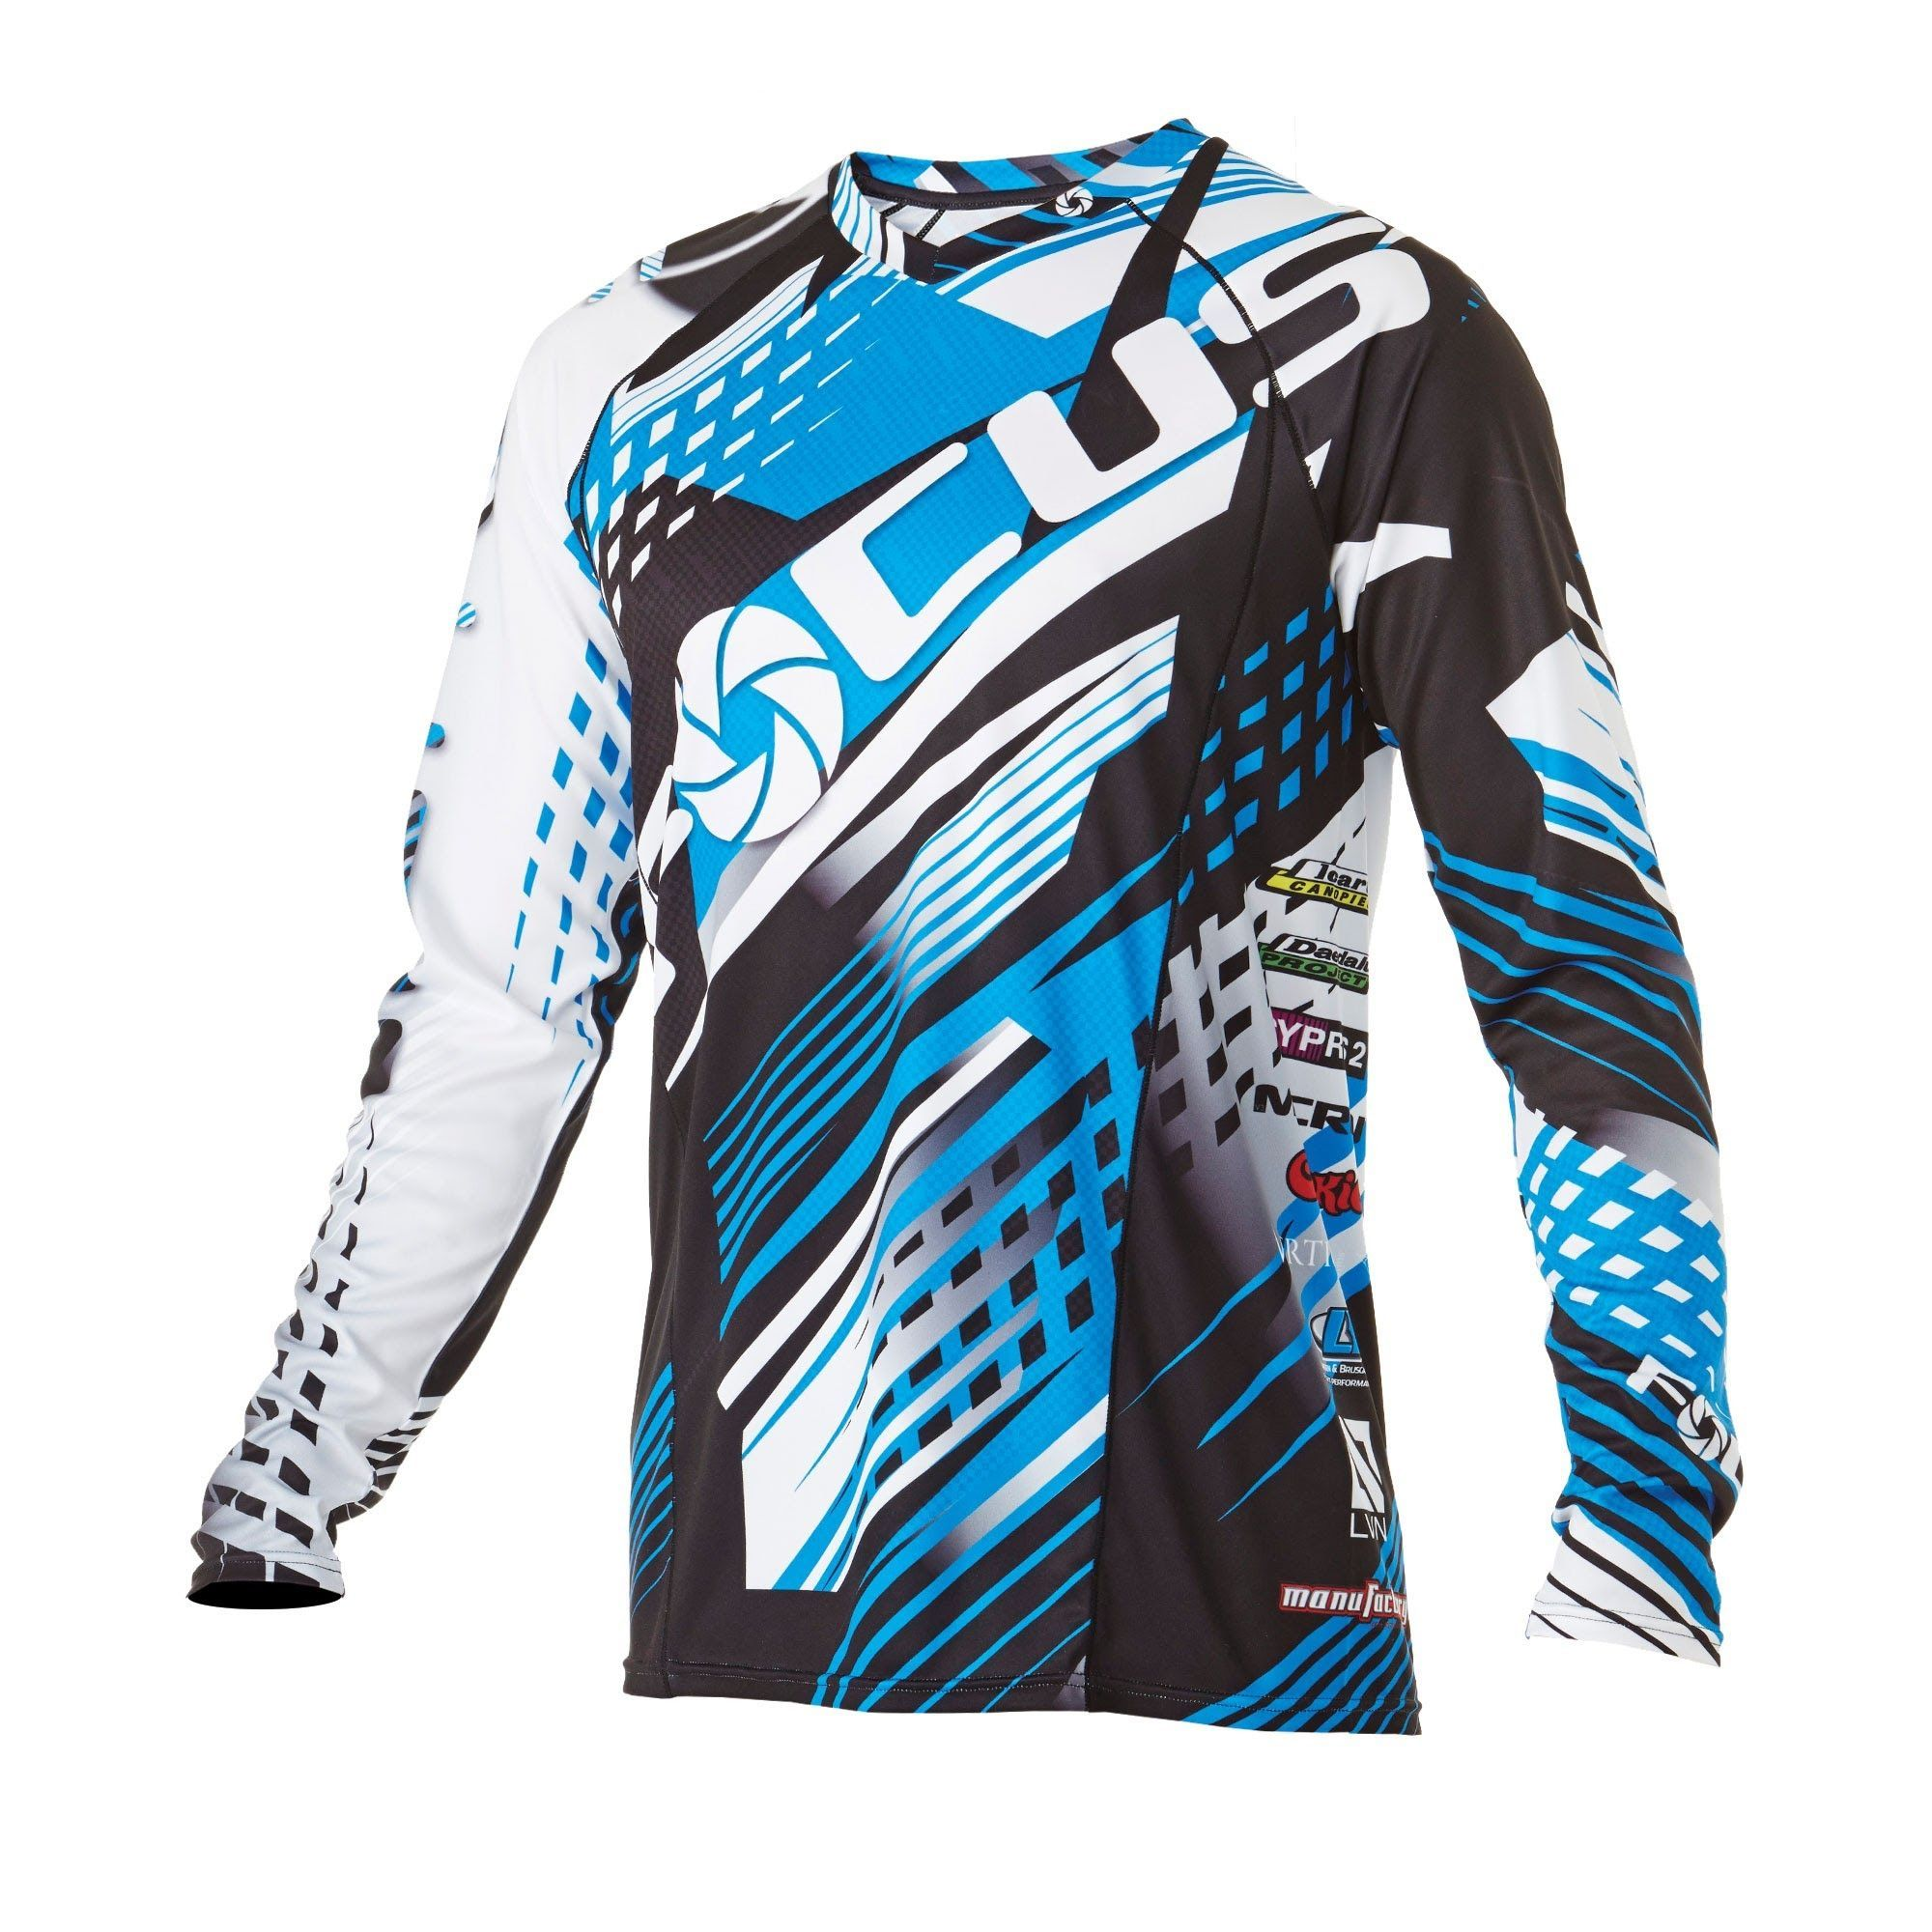 Infinite Skydiving Jersey In Blue Colorway At Manufactory